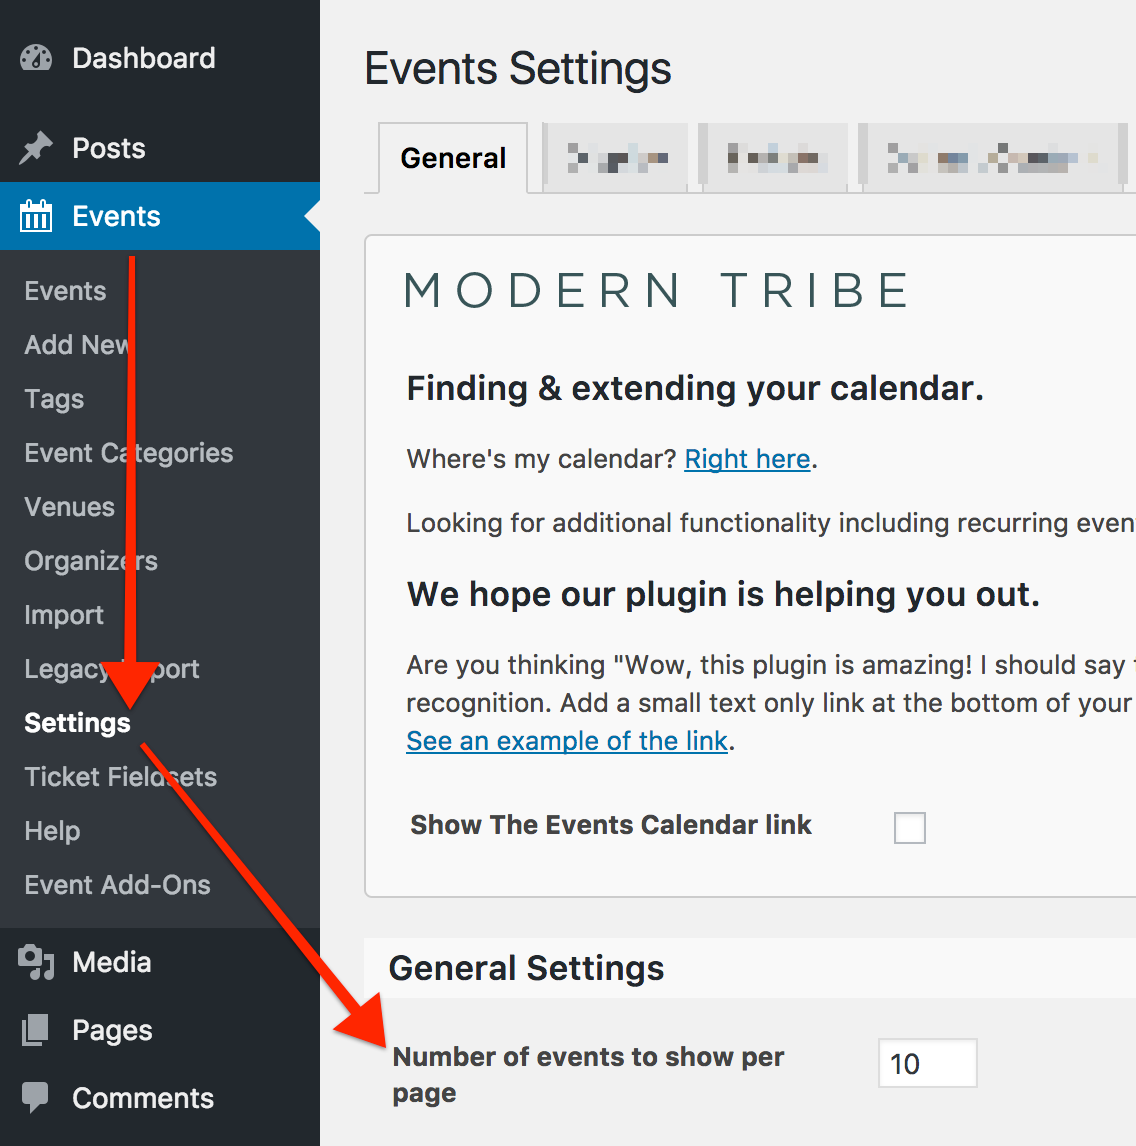 Compatibility with Divi by Elegant Themes | The Events Calendar